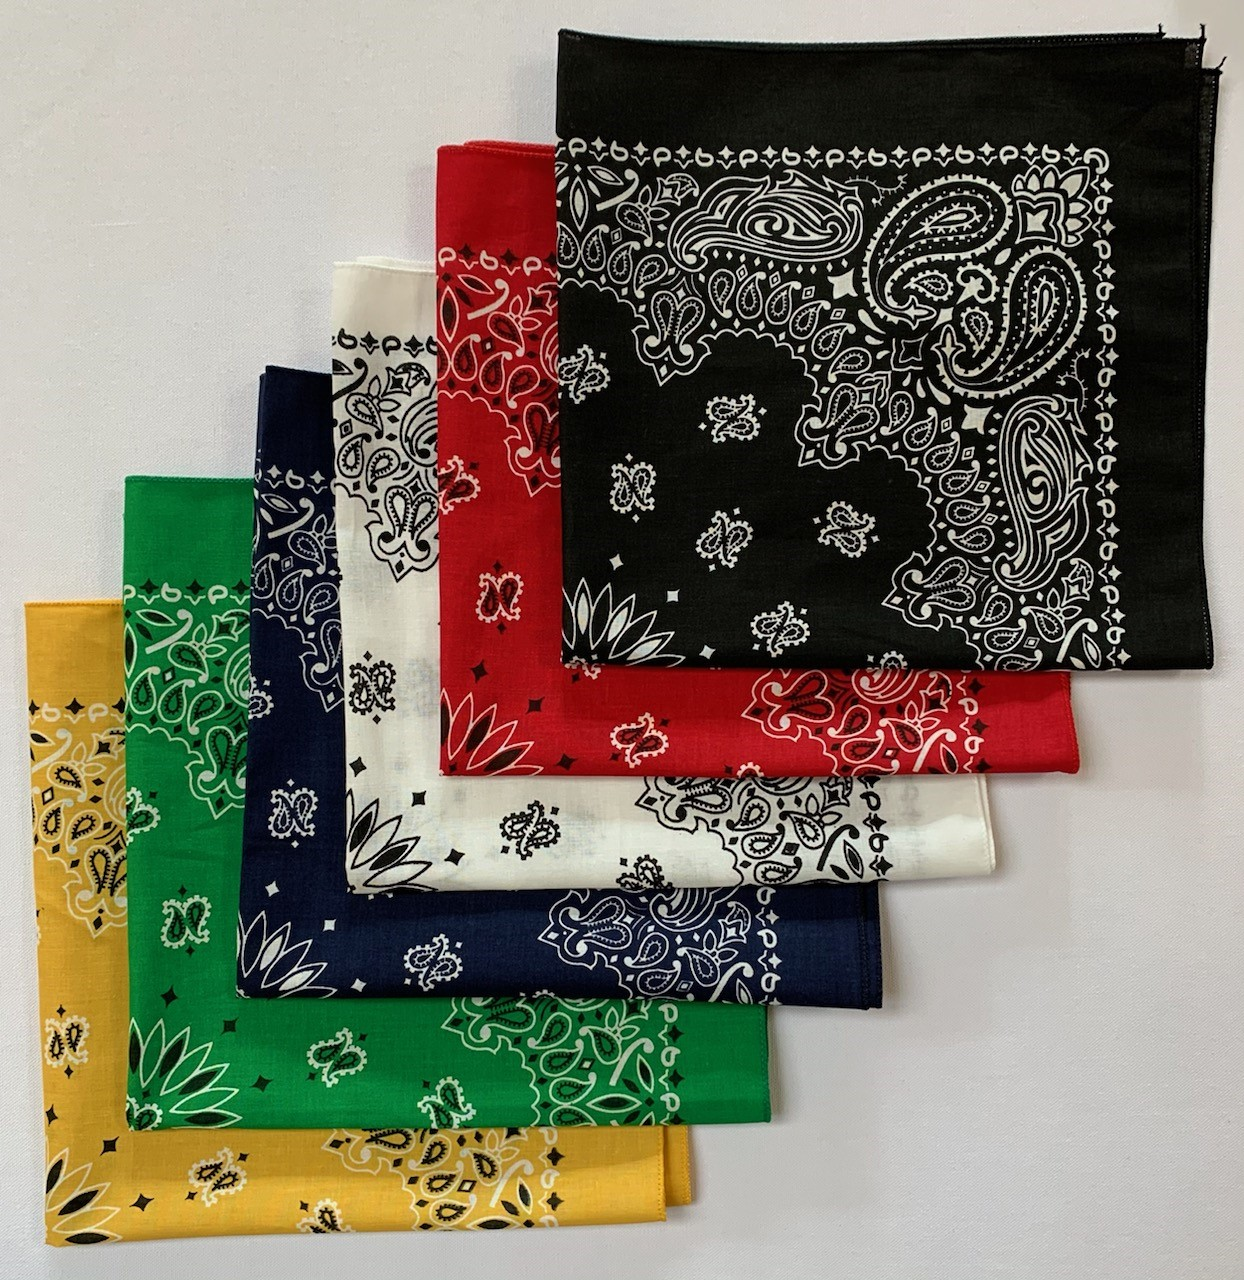 "Assorted Paisley Bandanas Made In USA 22"" x 22"" - 6 Pack Variety"